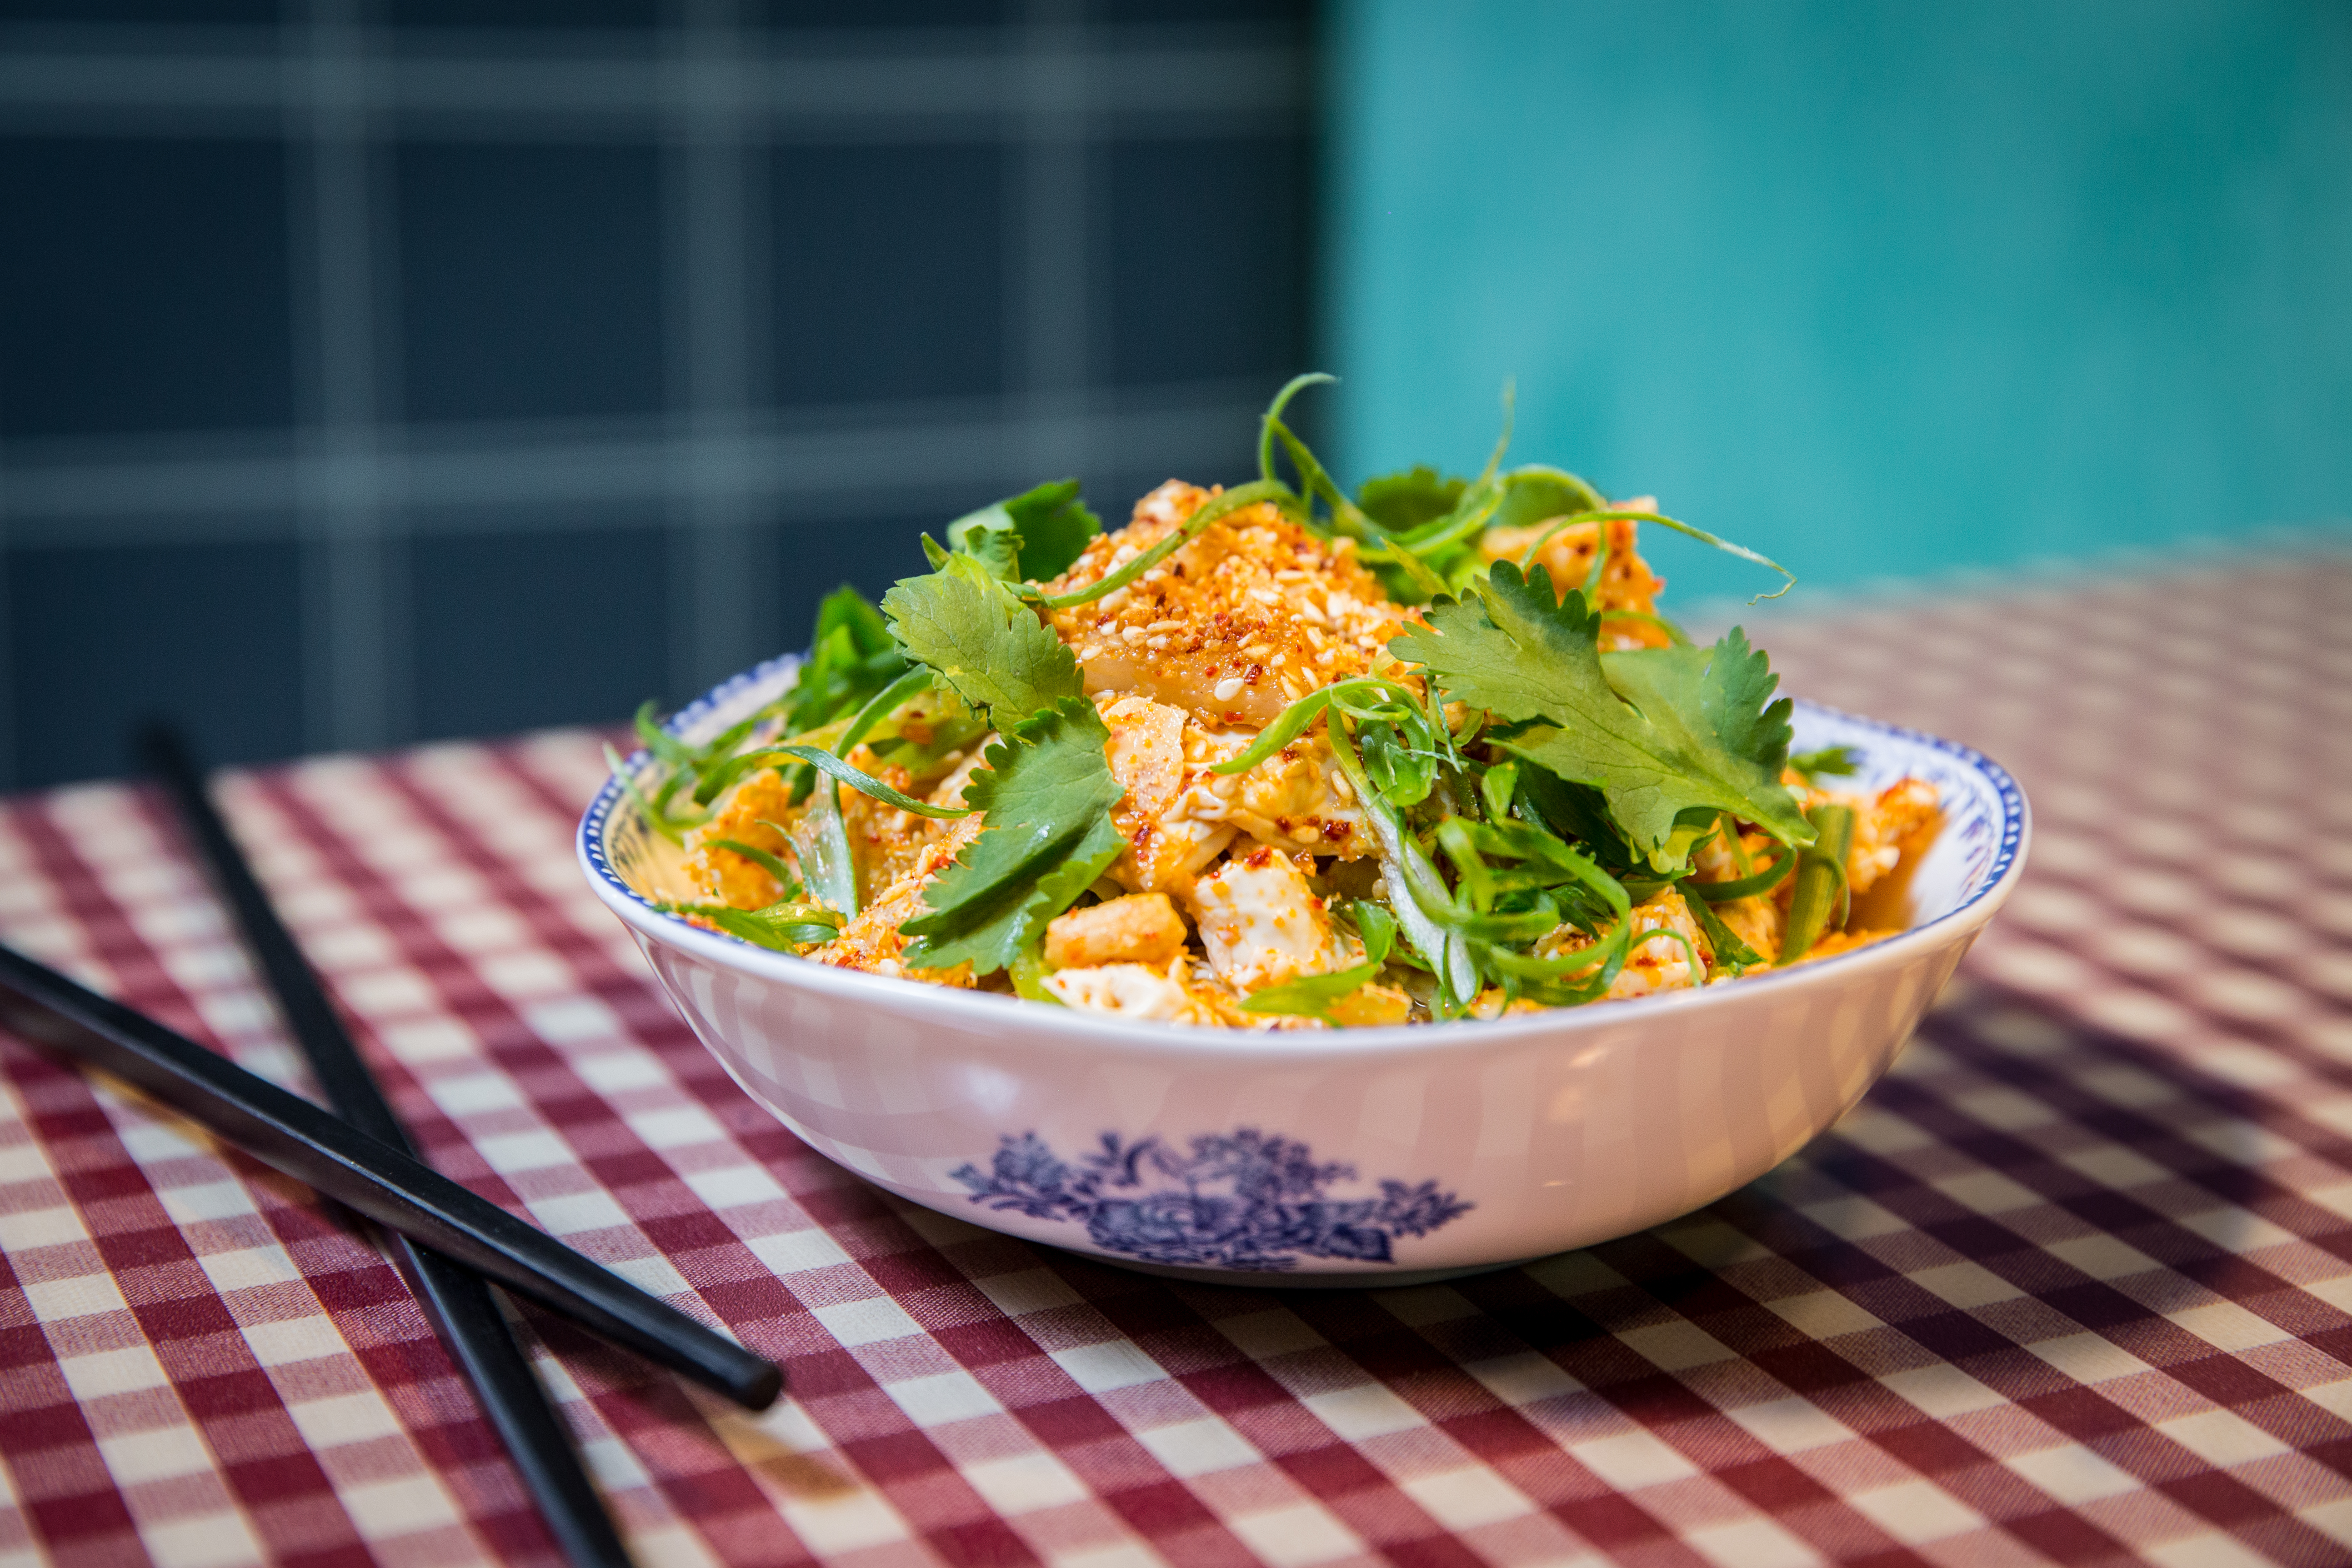 A Chinese tofu salad in a bowl.